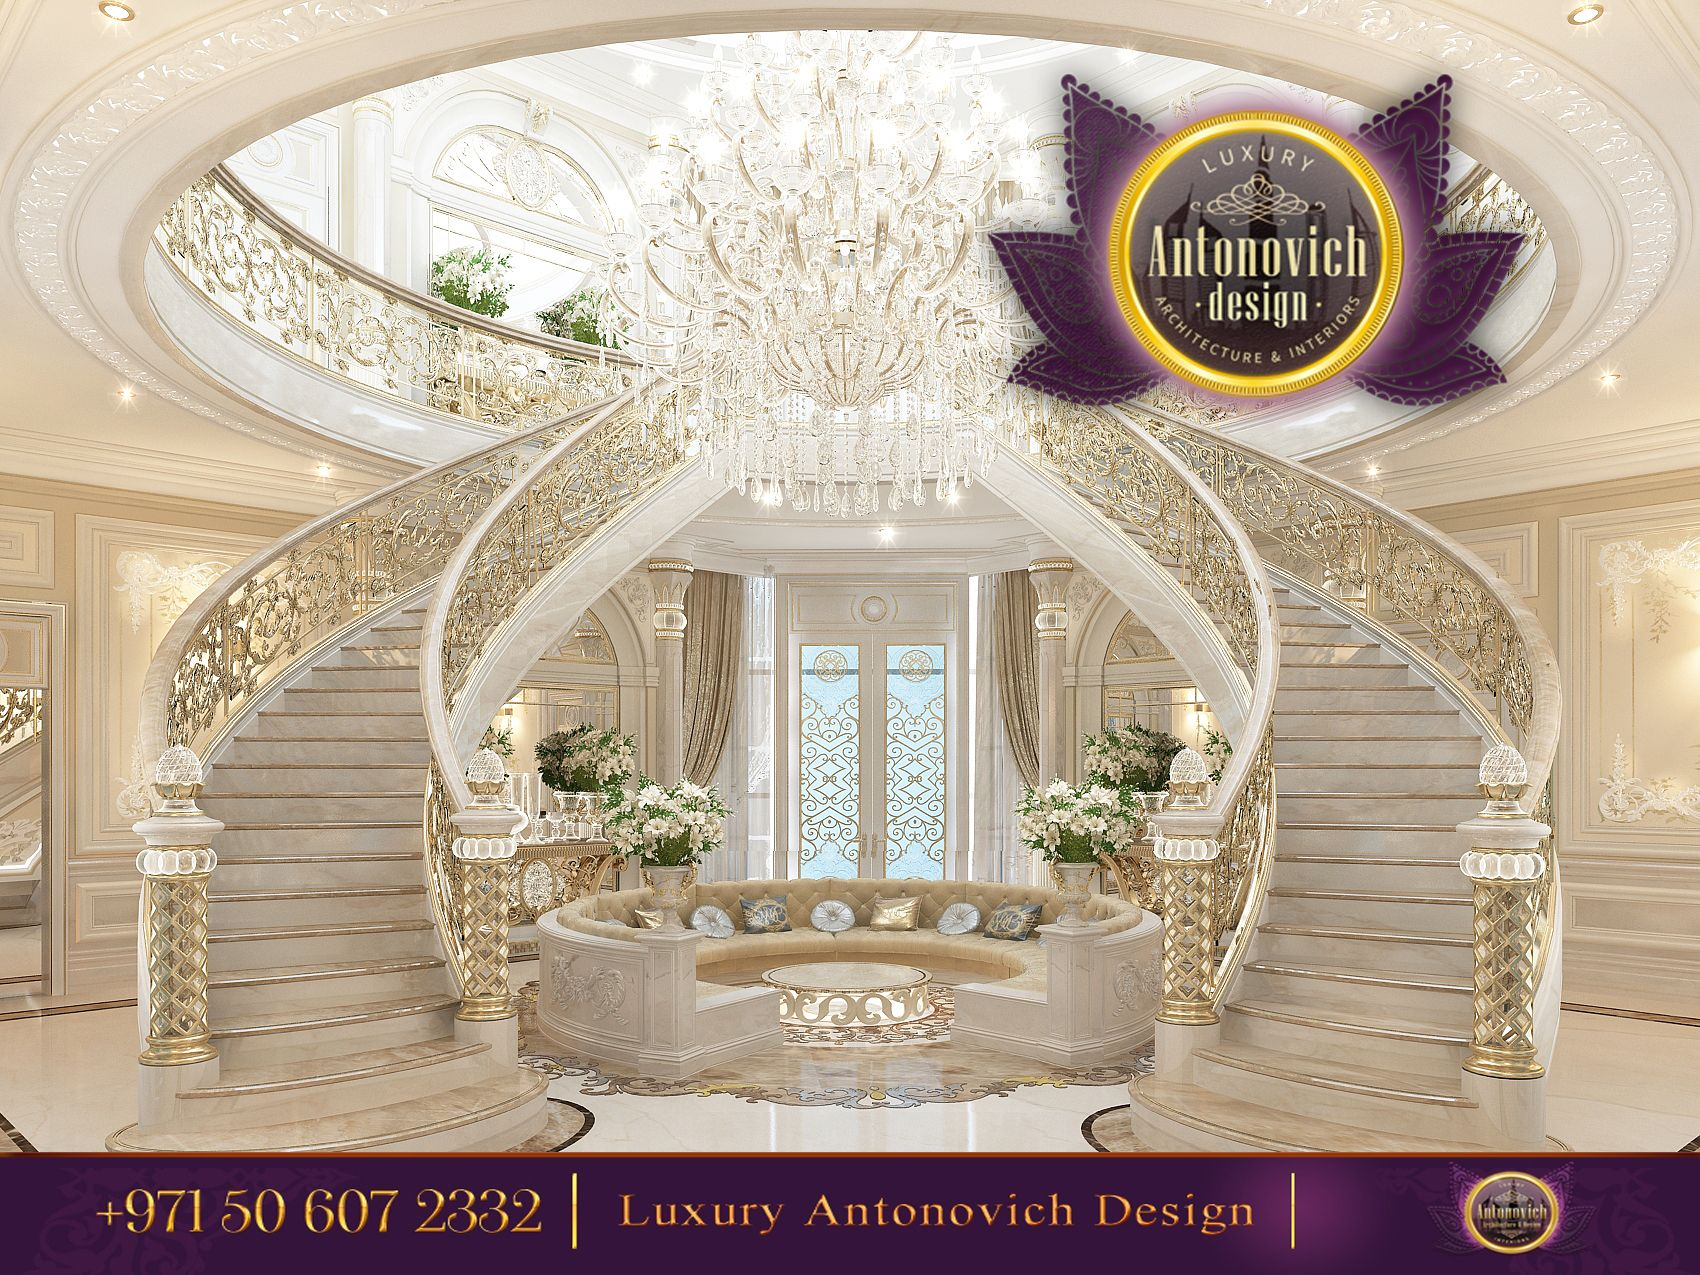 Beautiful dressing room design in dubai by luxury antonovich design - A Perfect Staircase Teases And Pleases The Eye Find This Pin And More On Halls From Antonovich Design